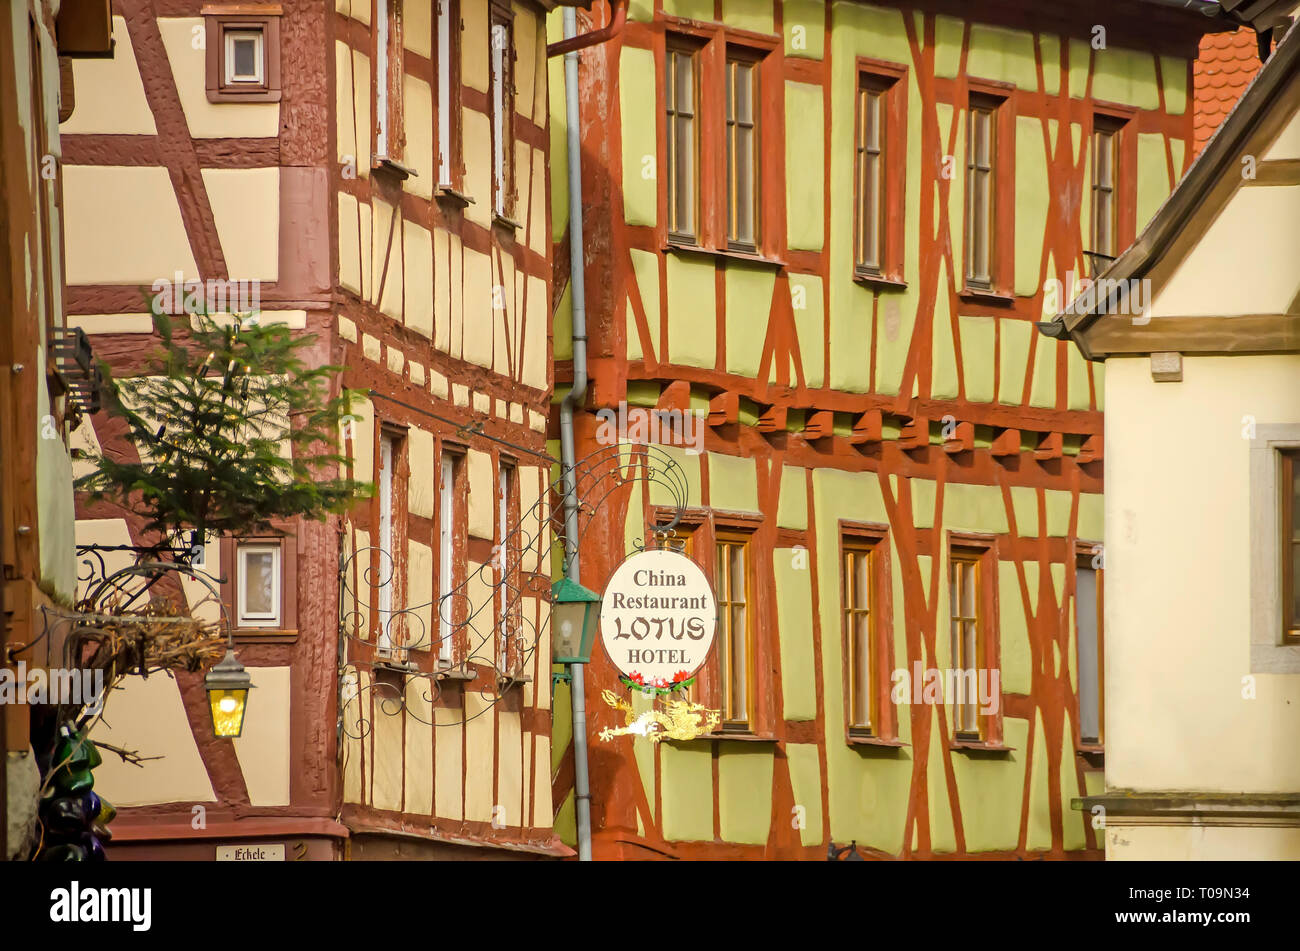 Half-timbered green hotel building  Rothenburg ob der Tauber, Germany - Stock Image